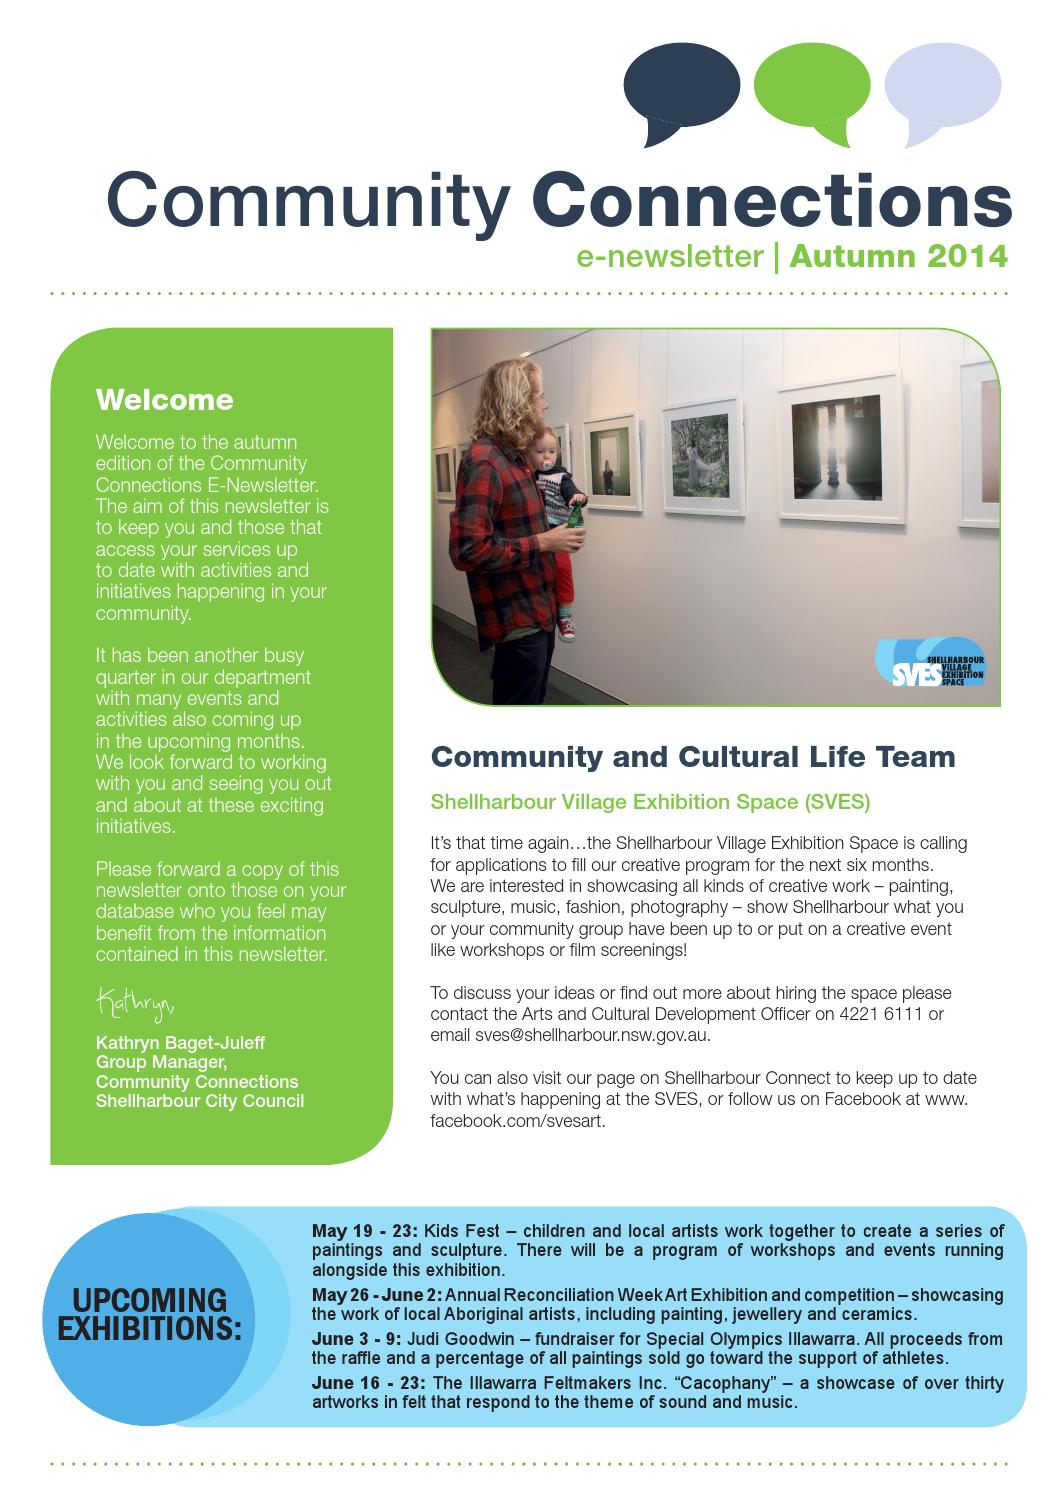 Community Connections Autumn 2014 by Shellharbour City